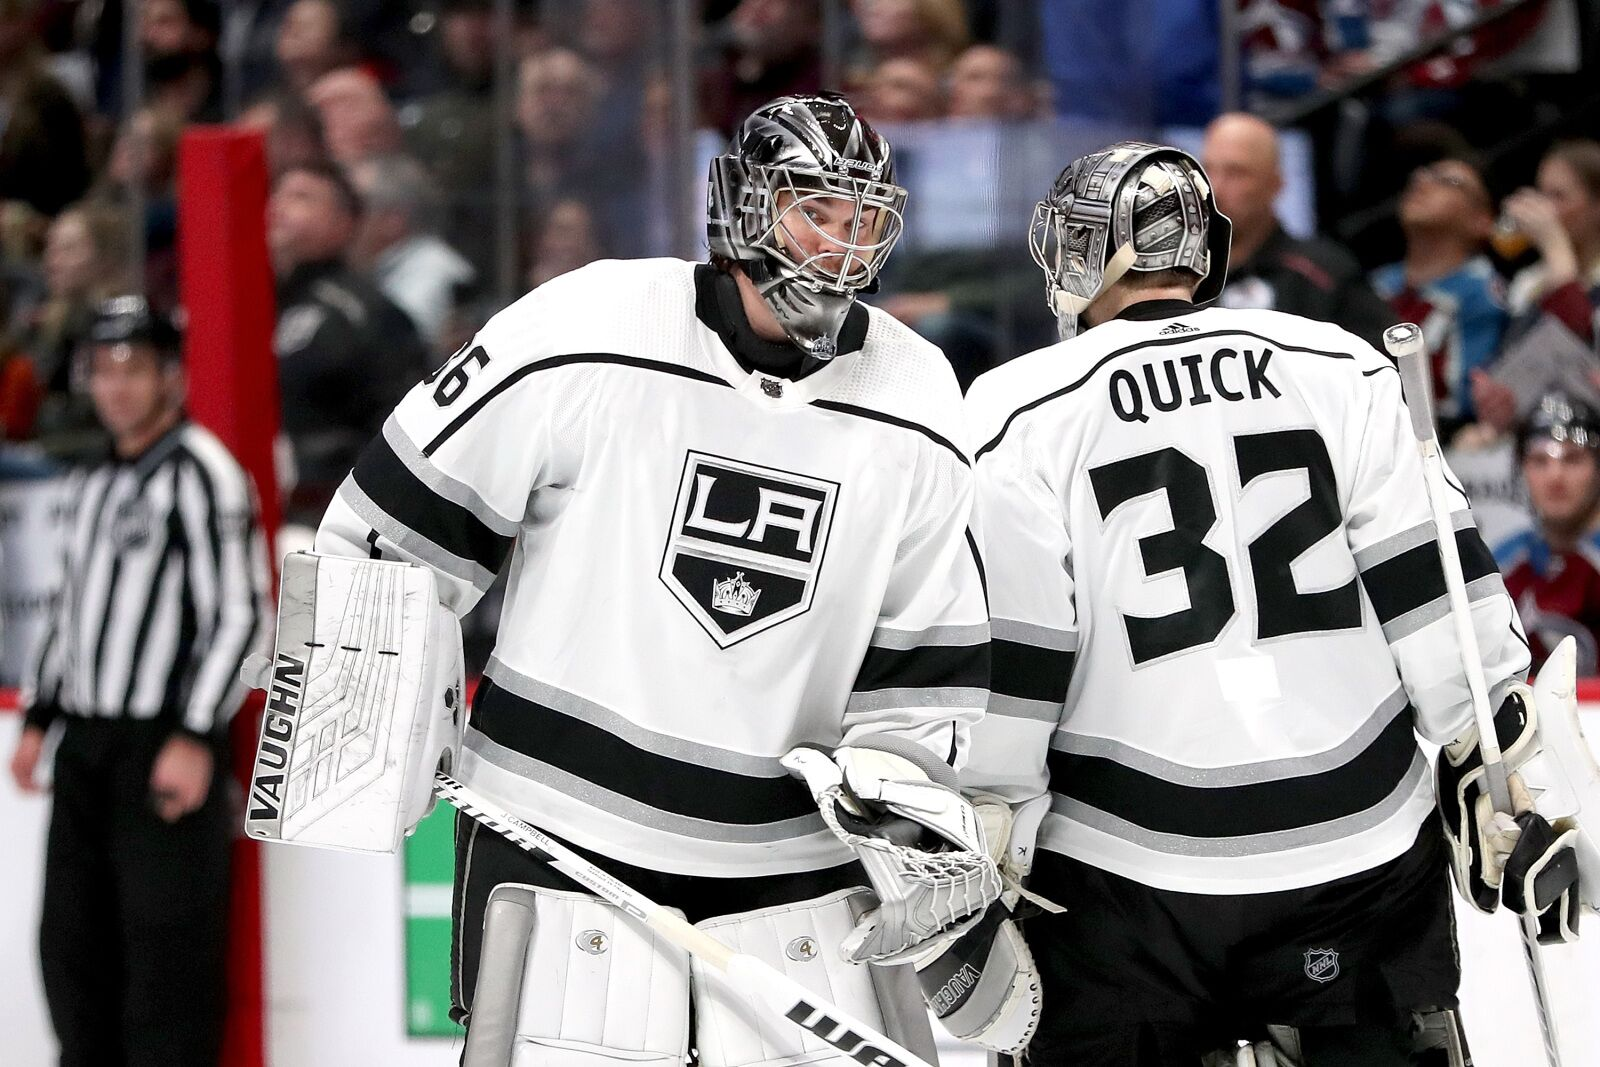 Los Angeles Kings have a promising future in the crease